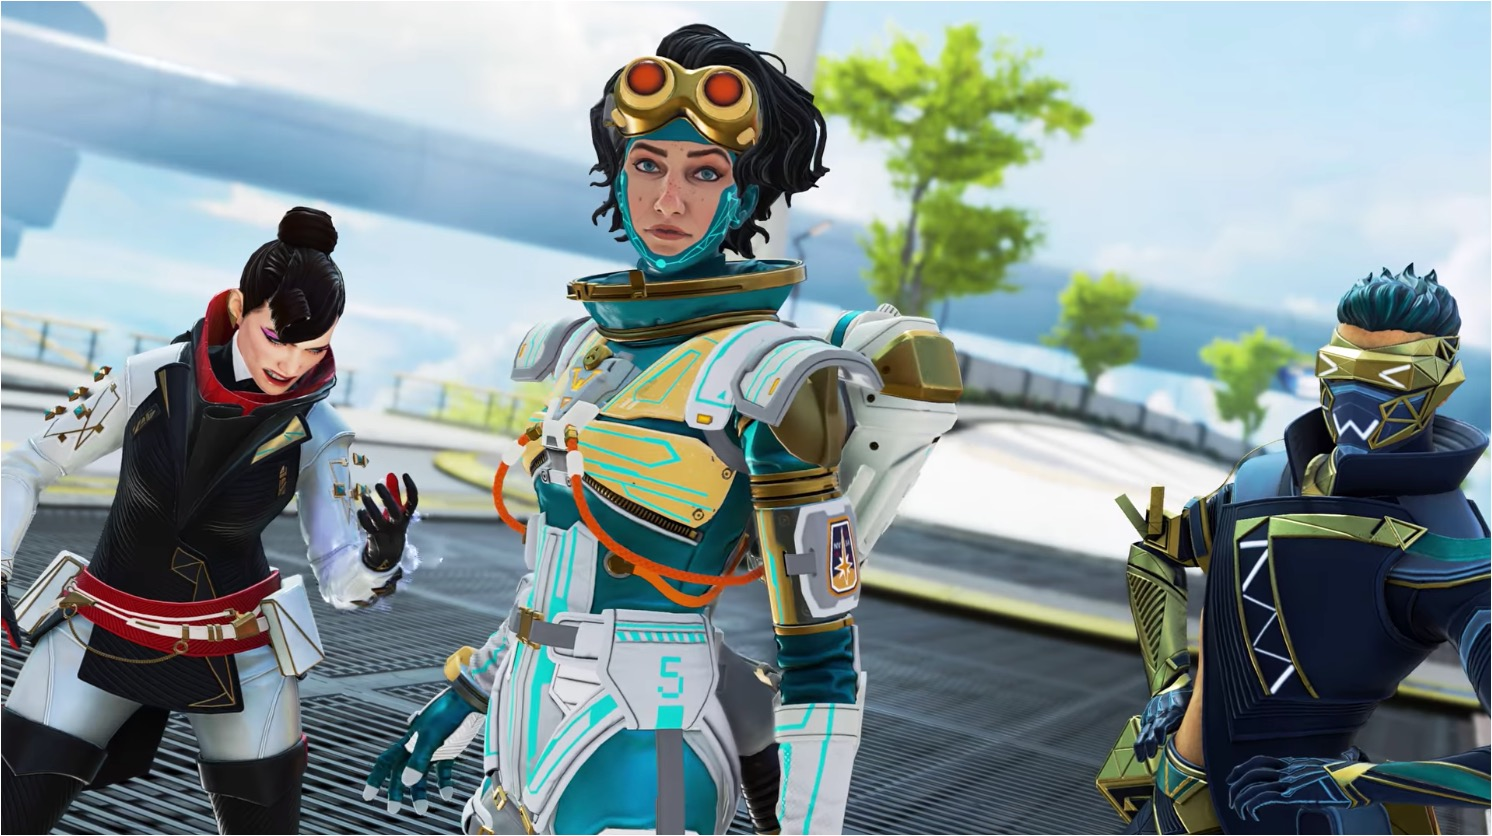 Apex Legends Battle Pass skins